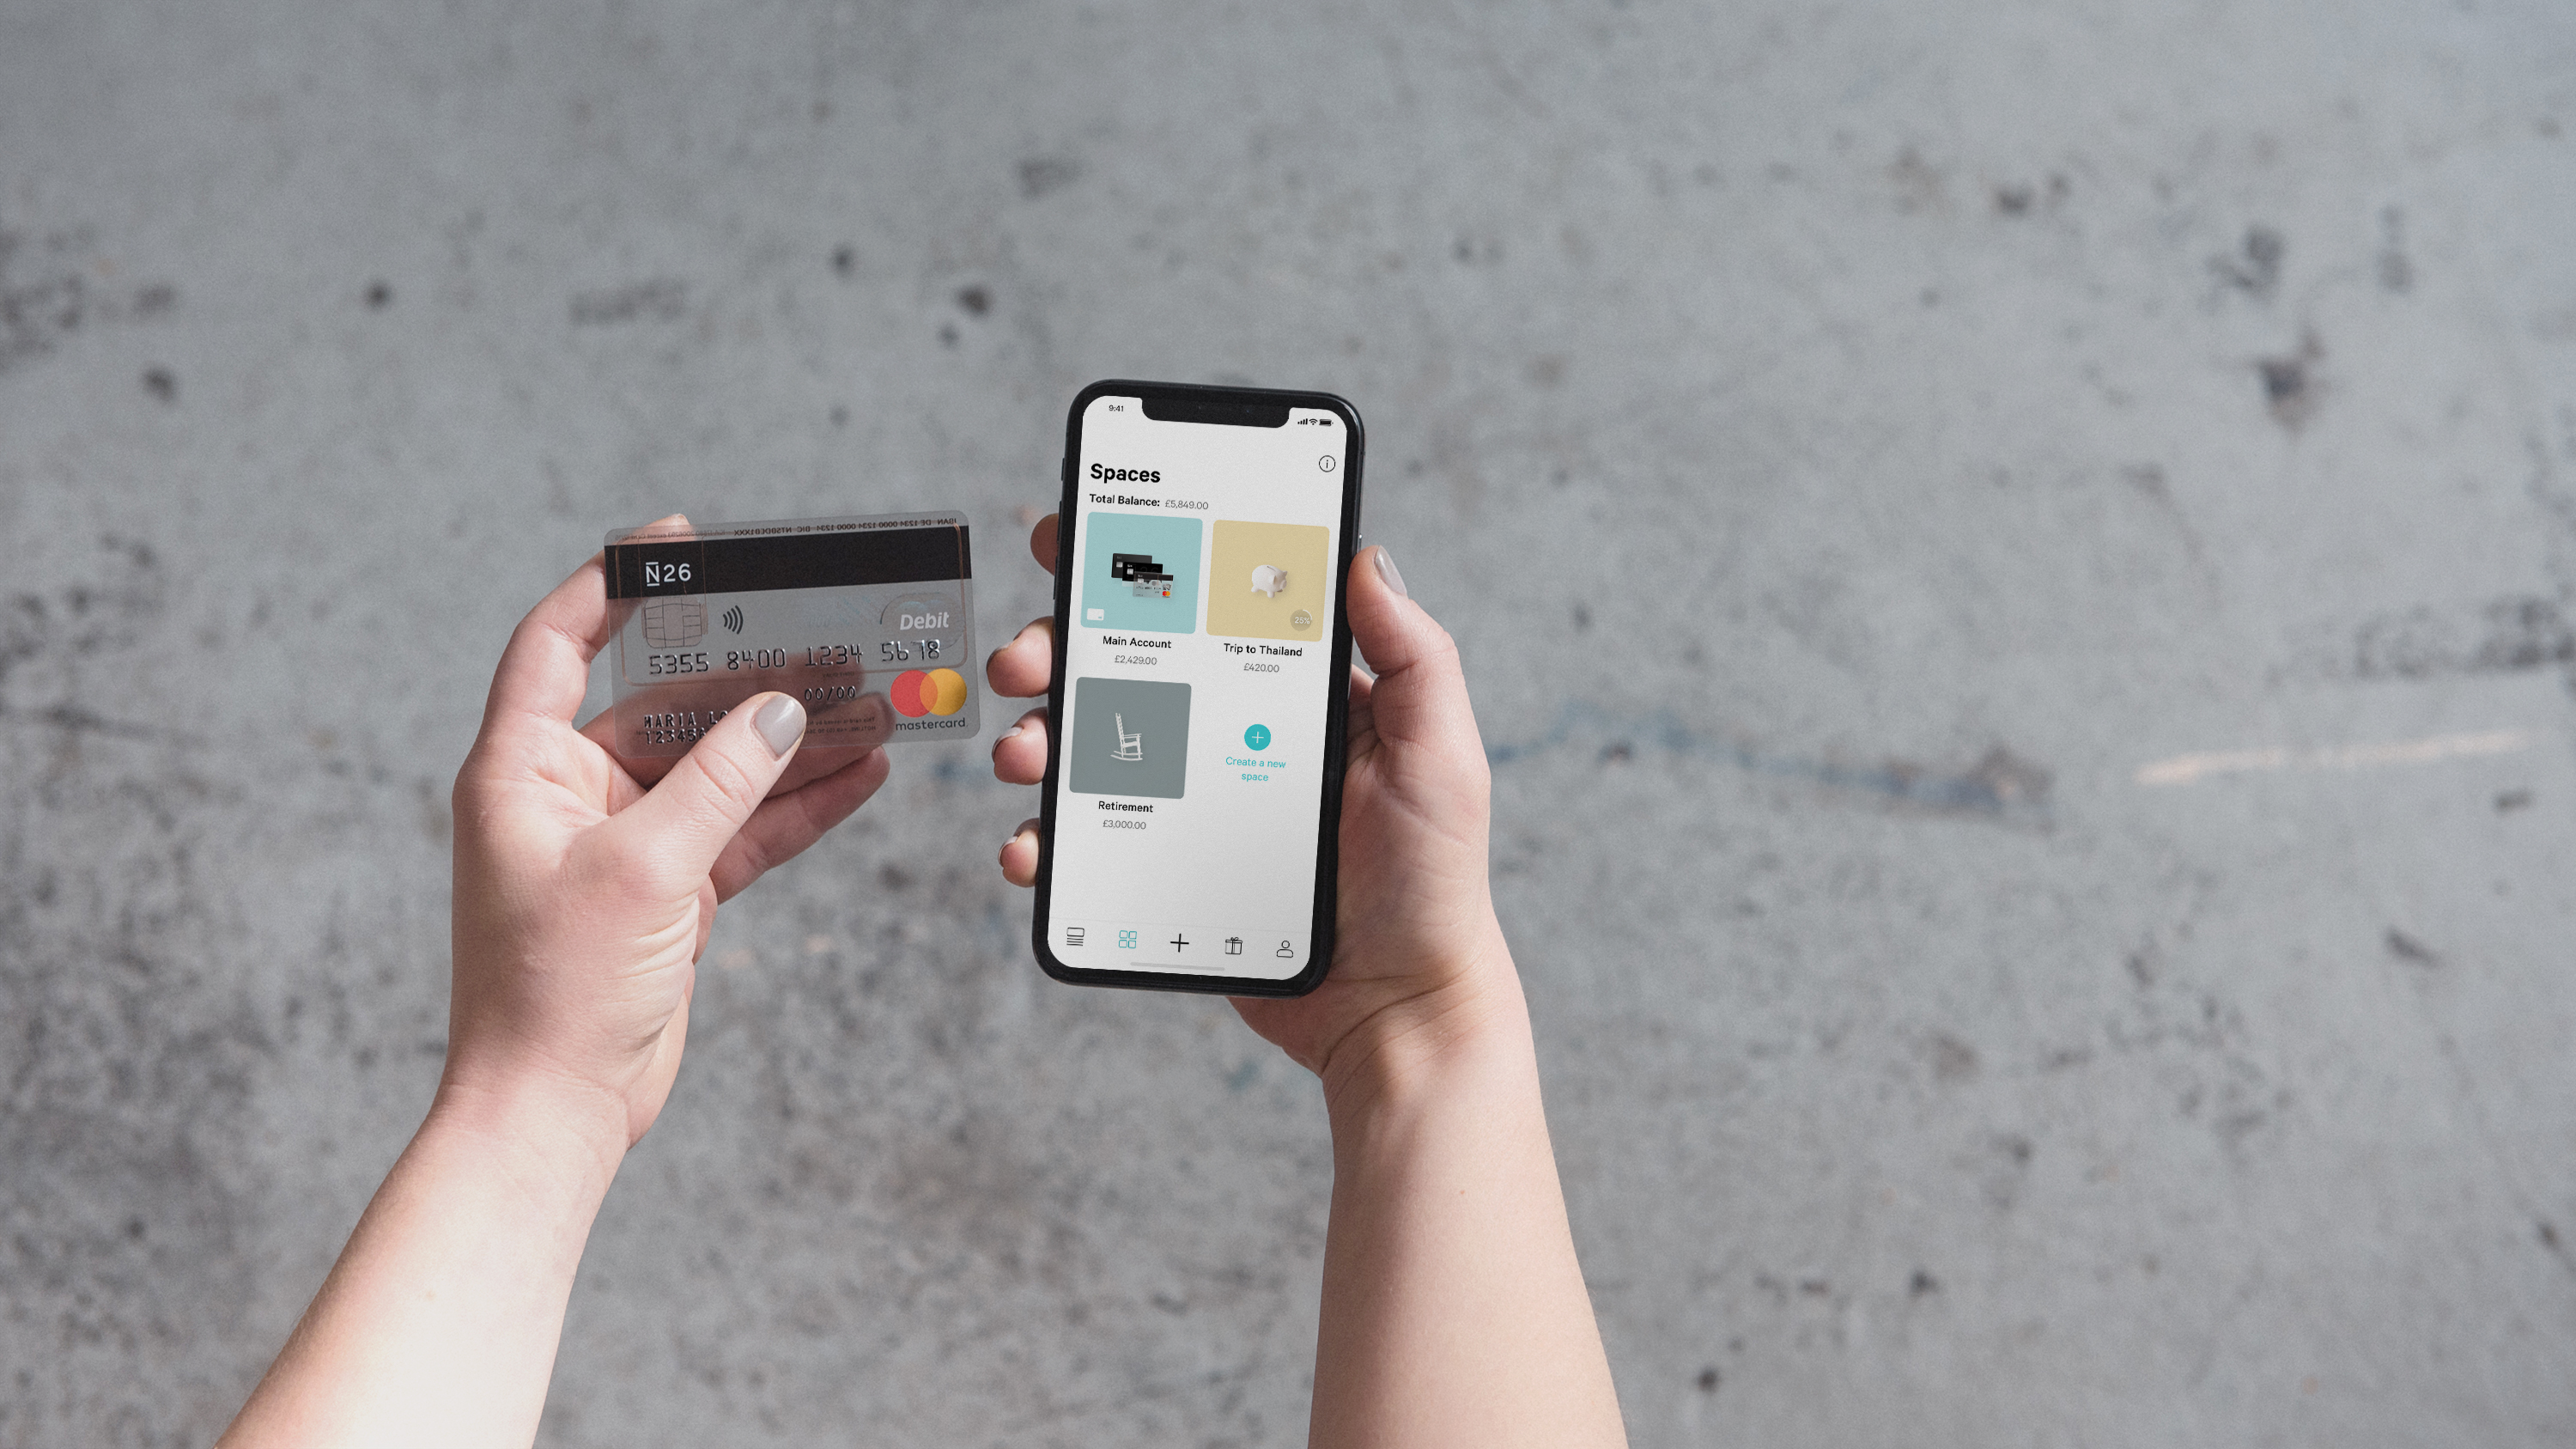 N26 iPhoneX Basic Card Spaces UK